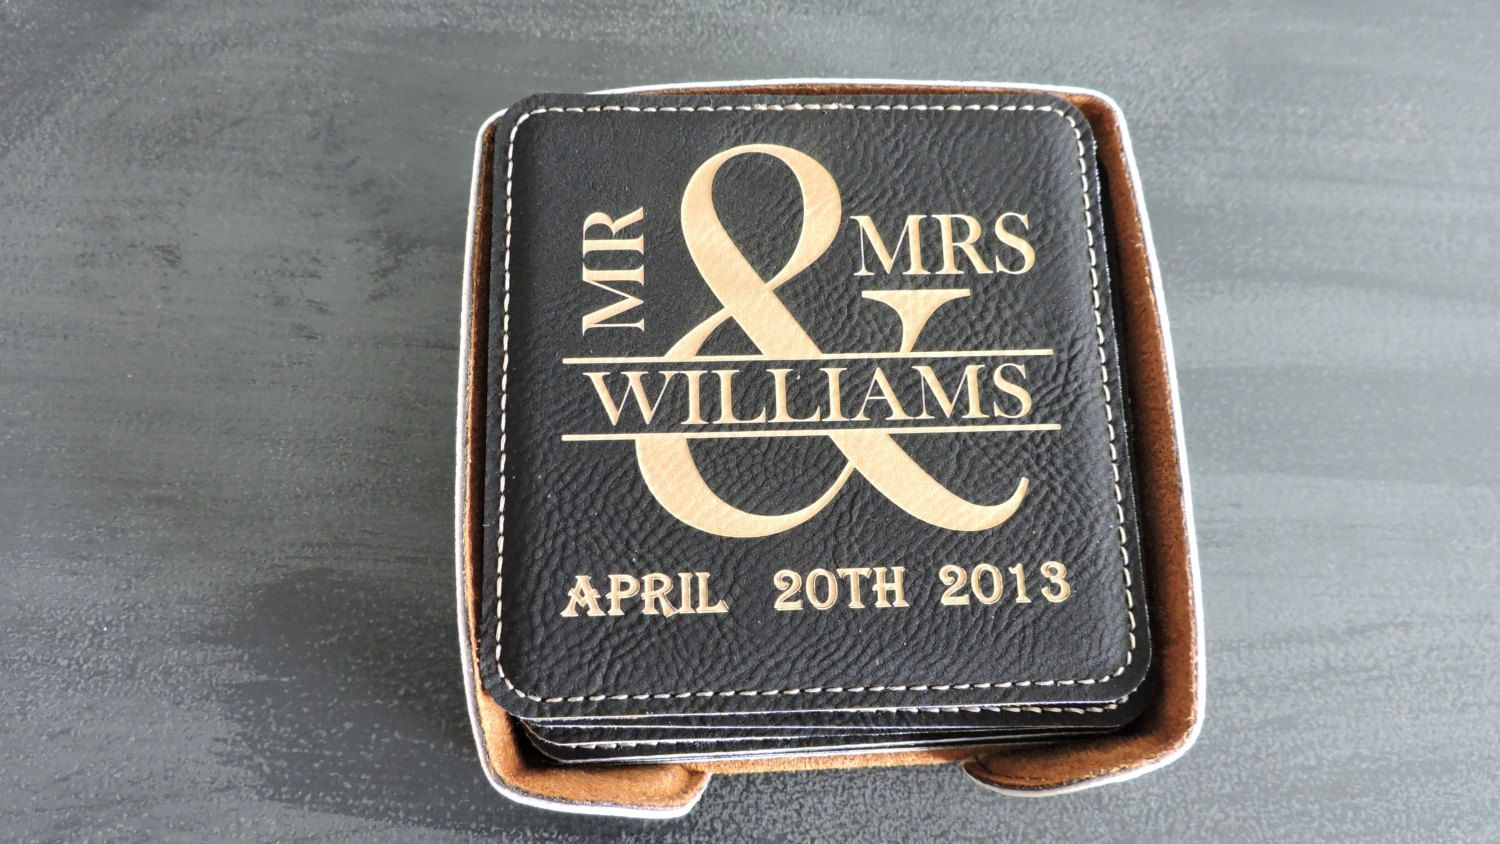 9th Wedding Anniversary Gift Leather: Mr & Mrs Gift, Leather Coaster Set Of 6 With Holder, Great